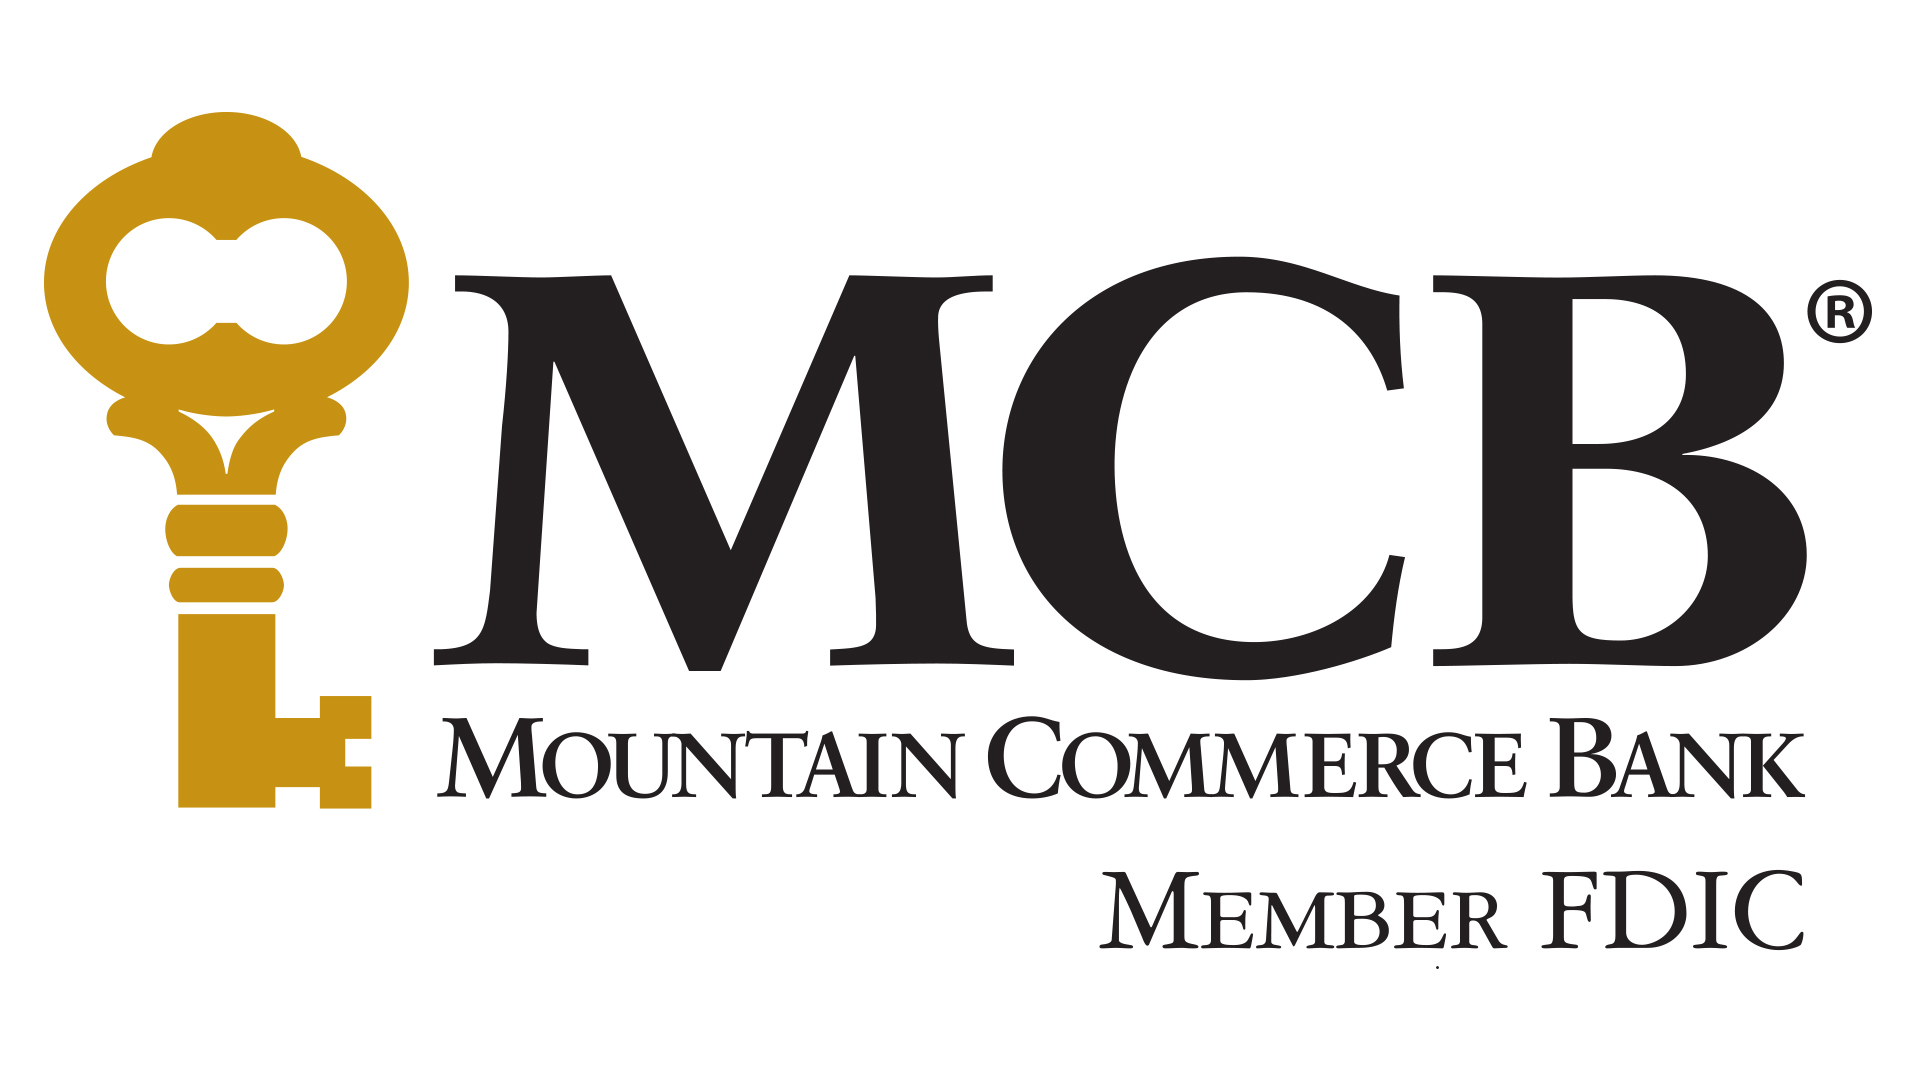 Mountain Commerce Bank